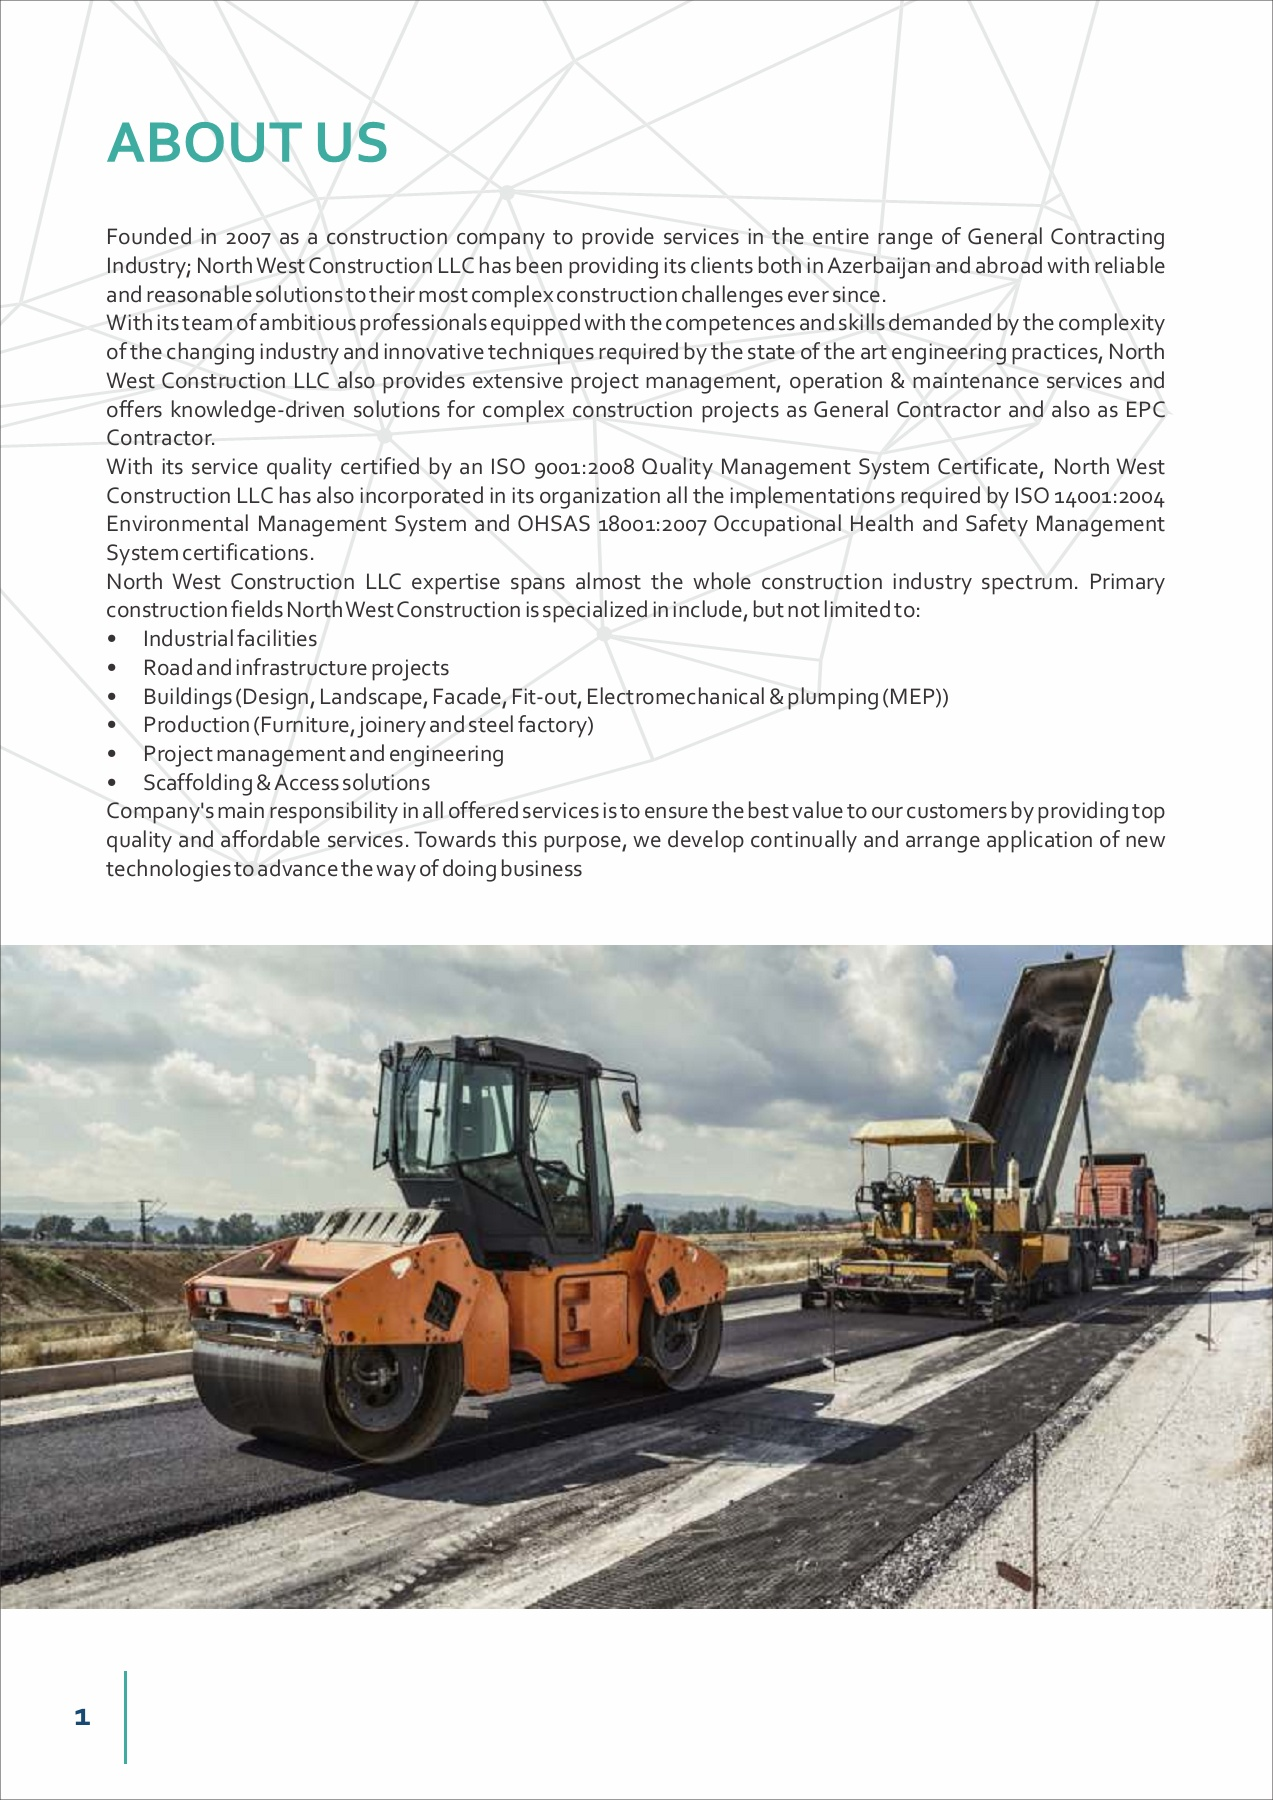 North west construction llc pages 1 50 text version anyflip